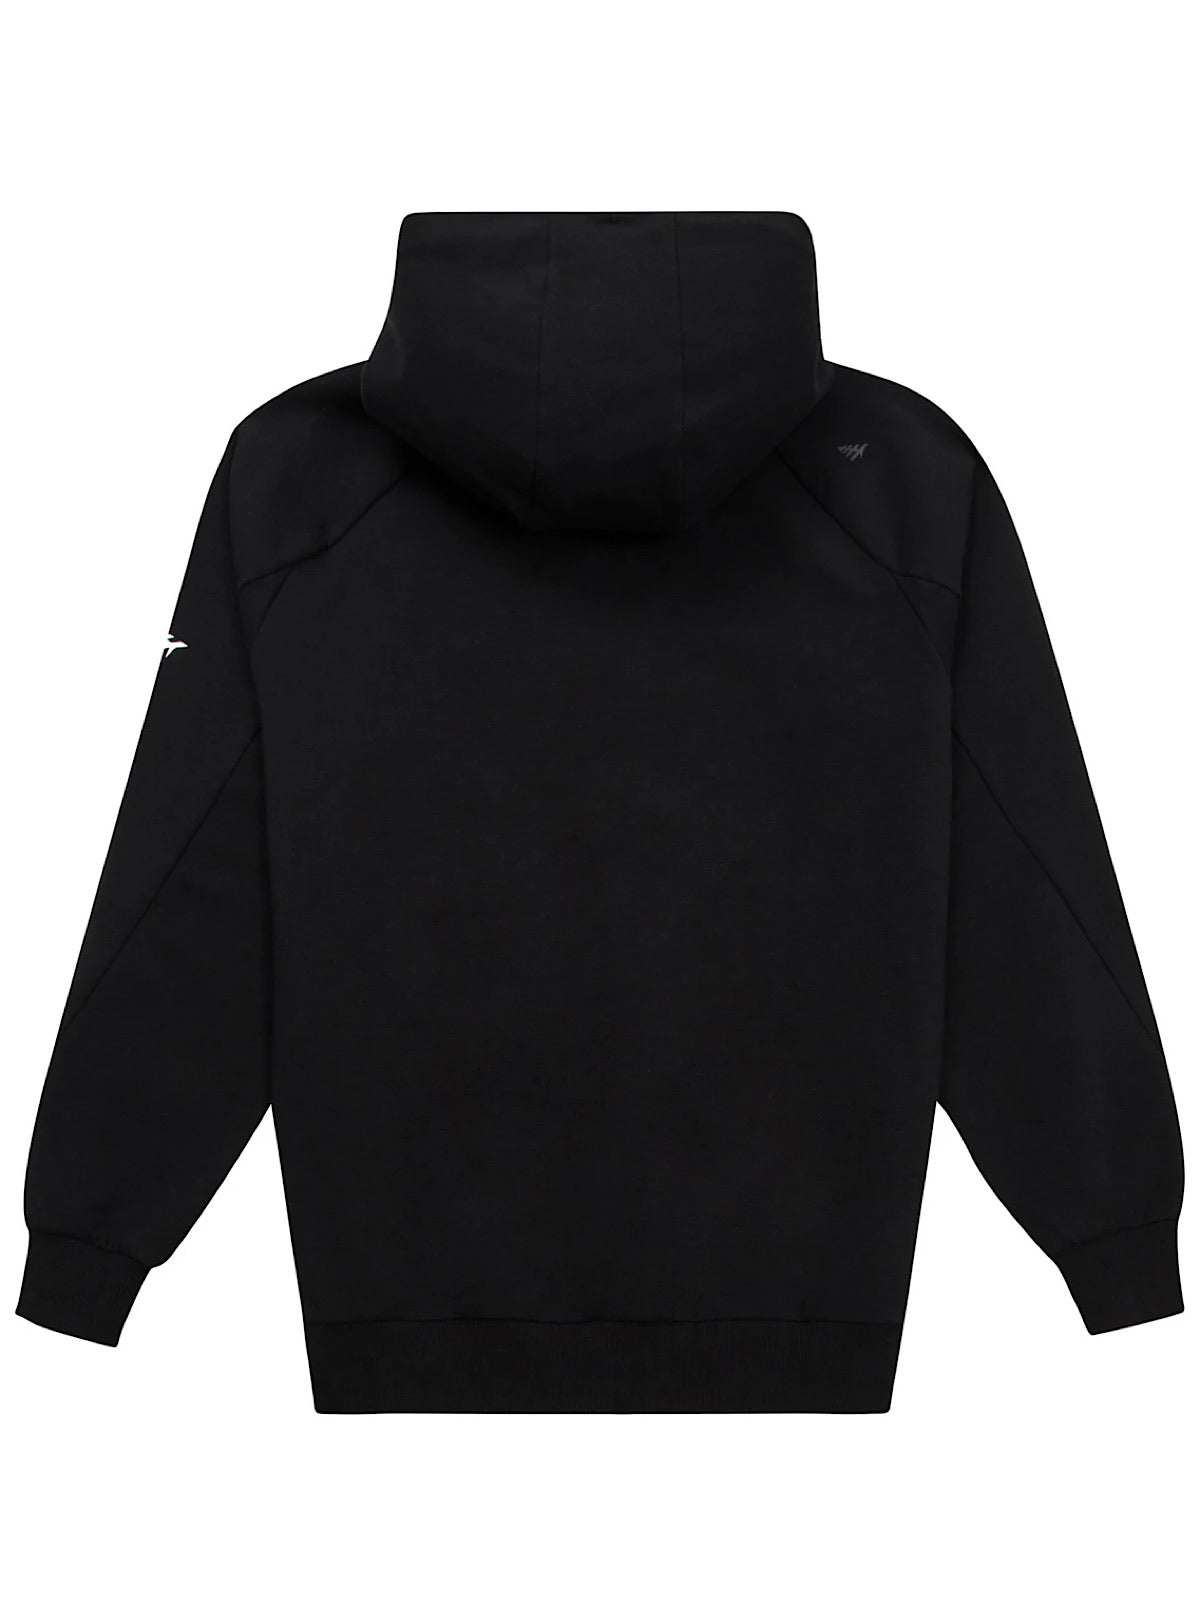 Paper Plane Hoodie - Fly With Us - Black - 101027